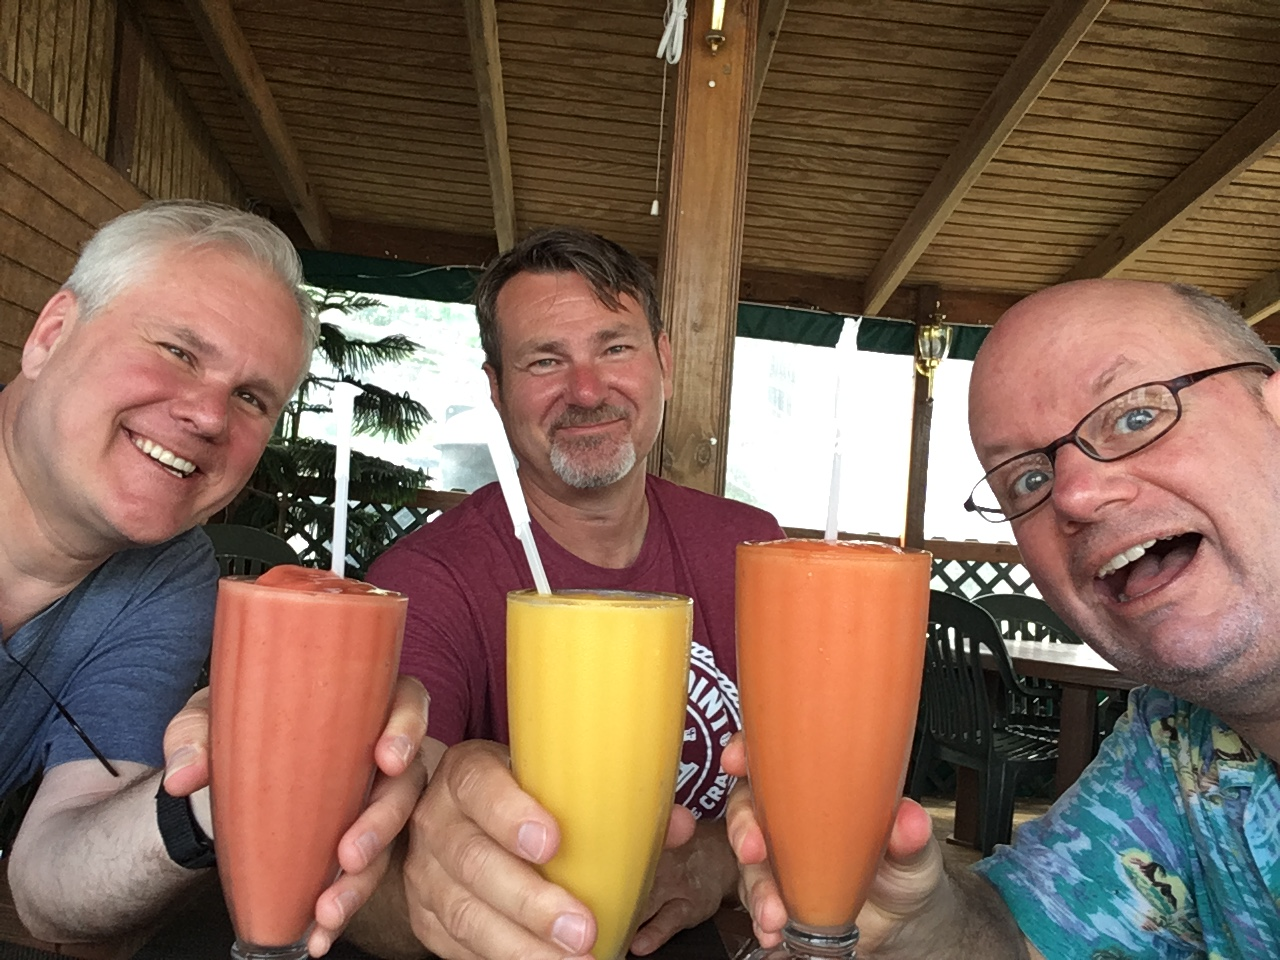 The Cleveland brothers join me for Saba Snack smoothies. Something three characters in my book do...